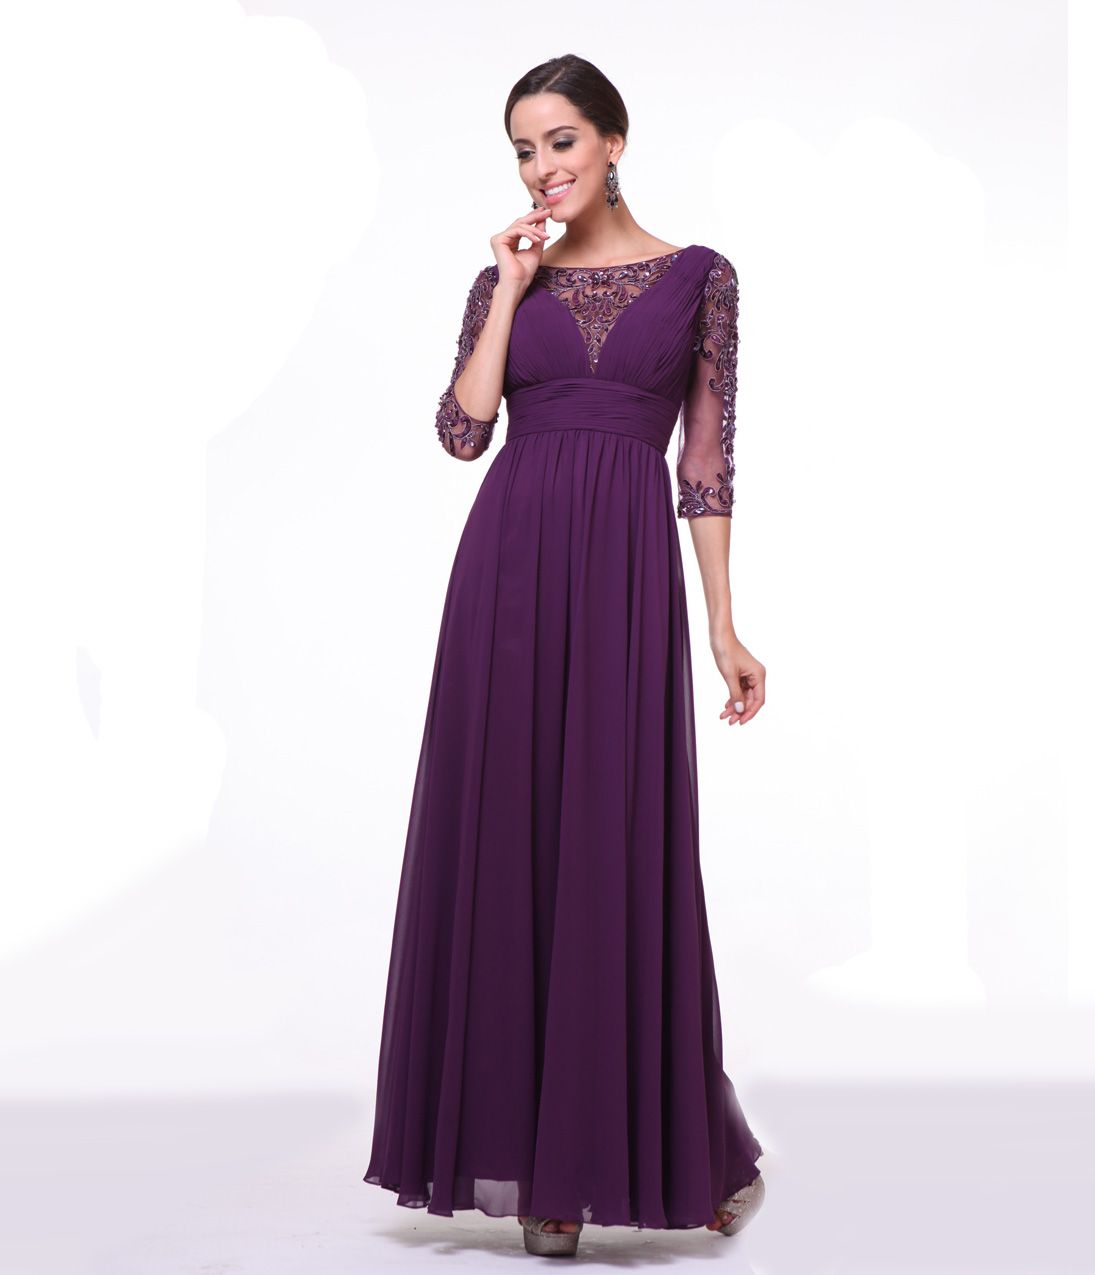 Deep eggplant dress. Three quarter length sleeves and an empire waist. The bodice and sleeves are complete with embellishments and a long flowing chiffon skirt completes the look!